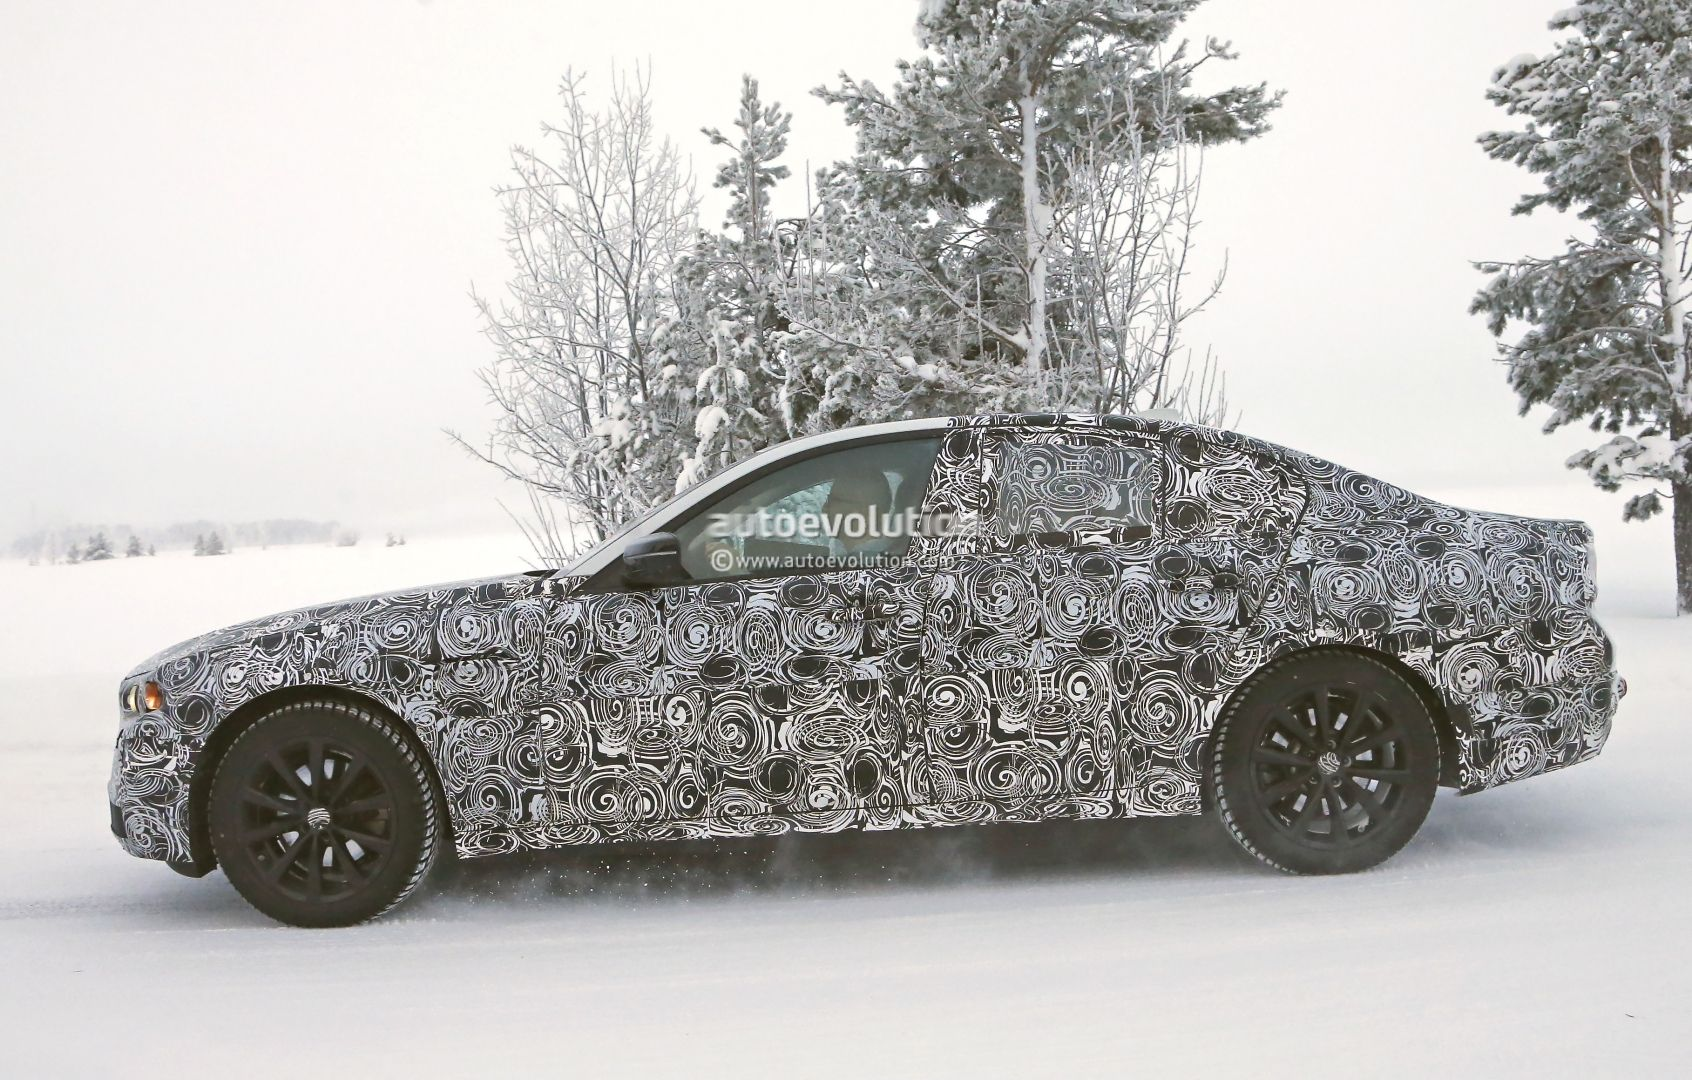 BMW G30 5 Series Could Debut at 2017 Detroit Auto Show